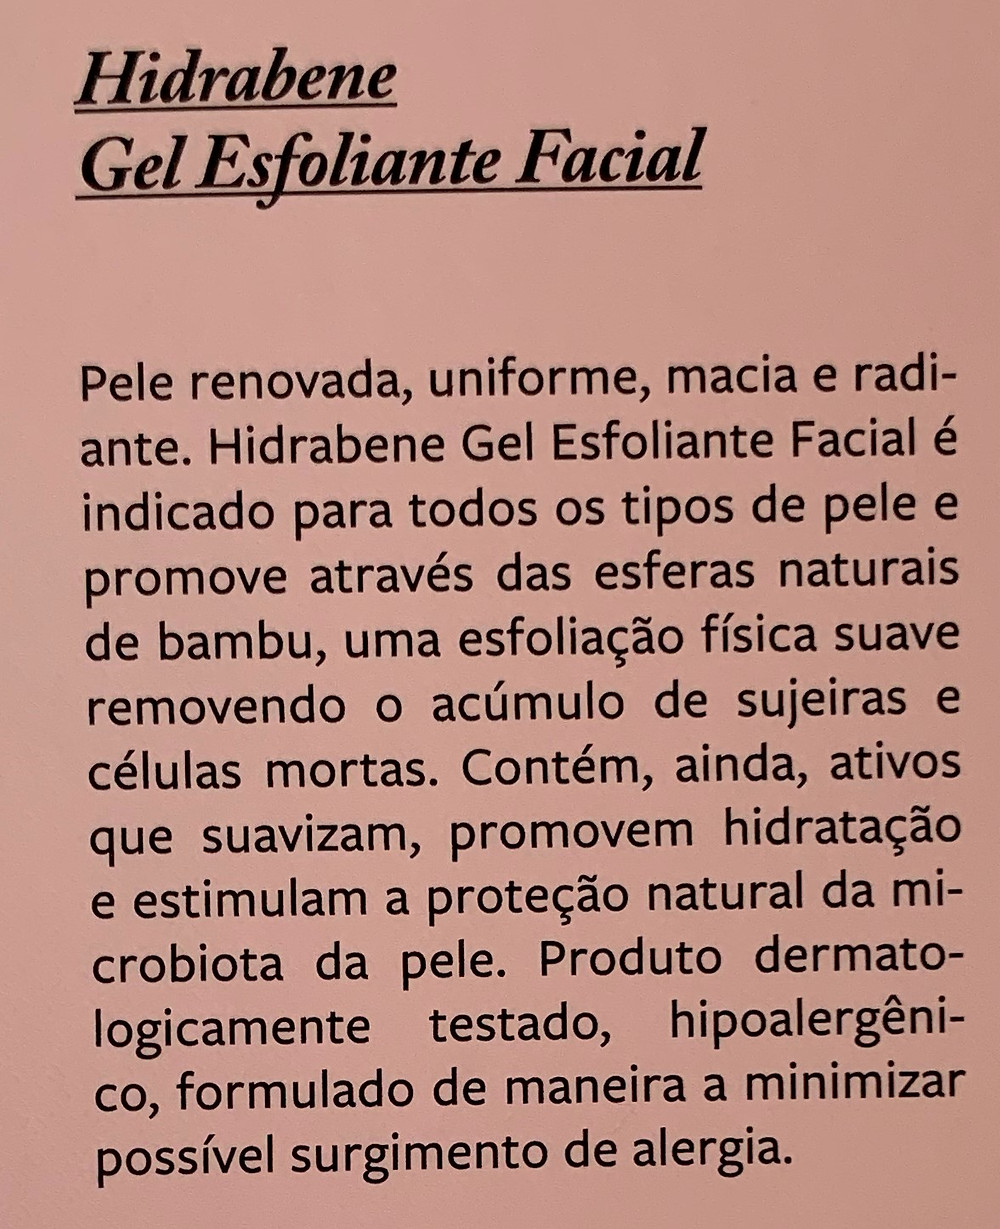 Gel esfoliante facial Hidrabene